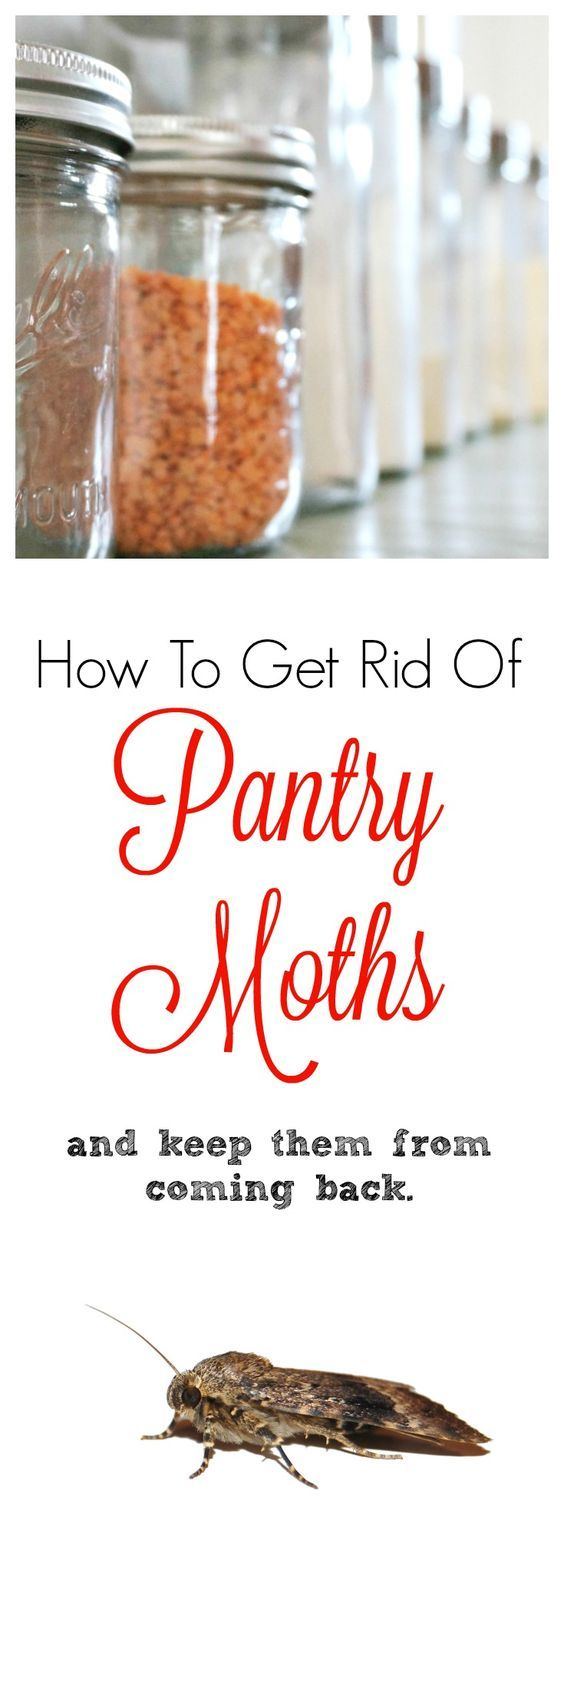 Pantry moths are disgusting! Here is how to get rid of them and keep them from coming back for good.